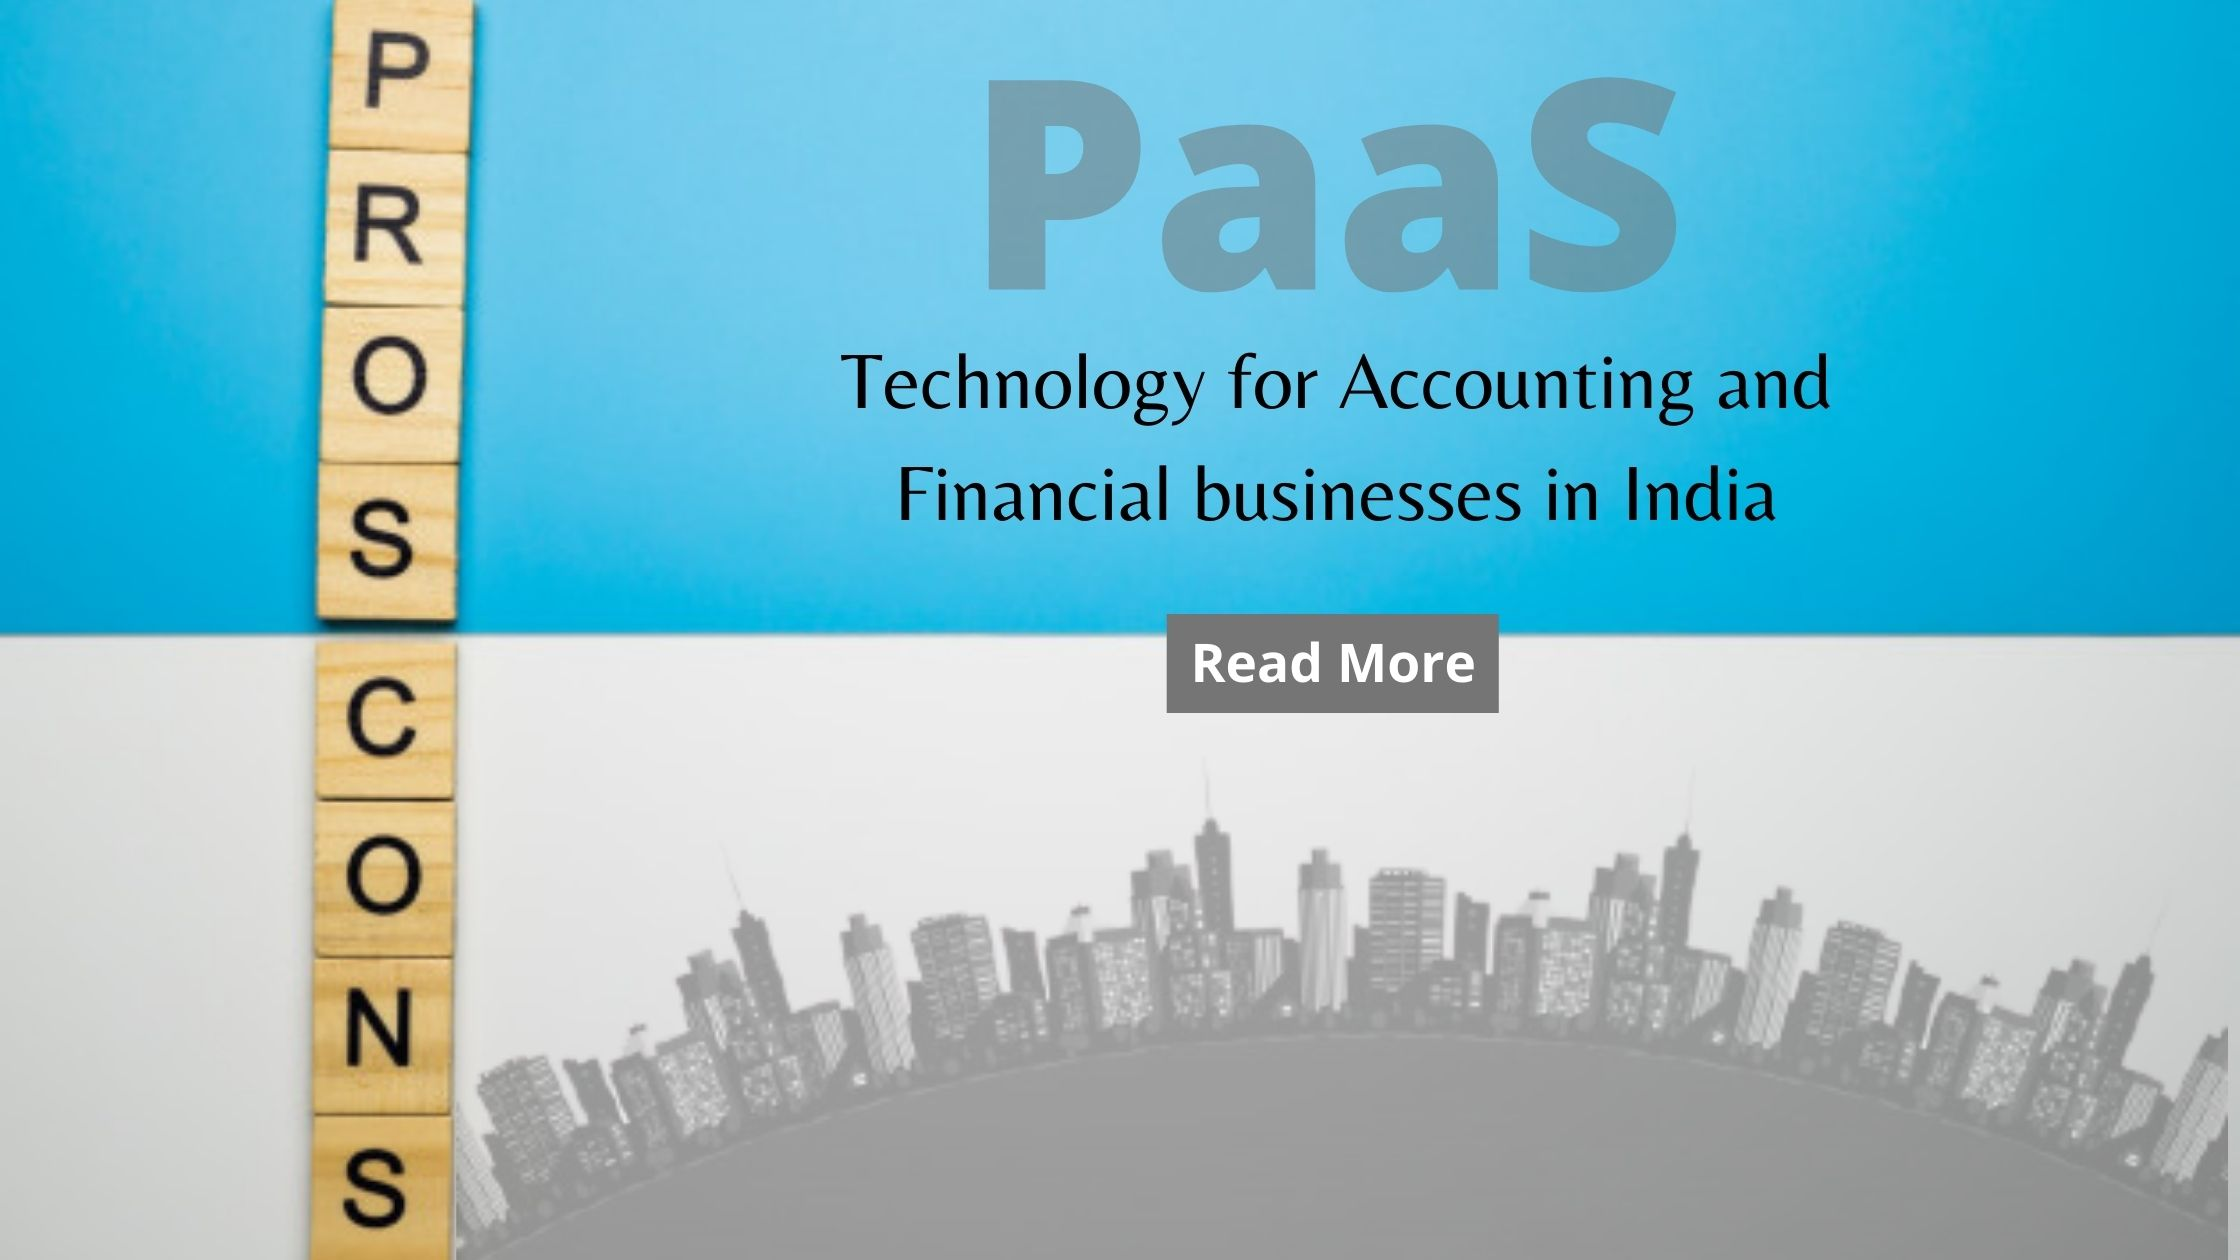 PAAS technology pros and cons